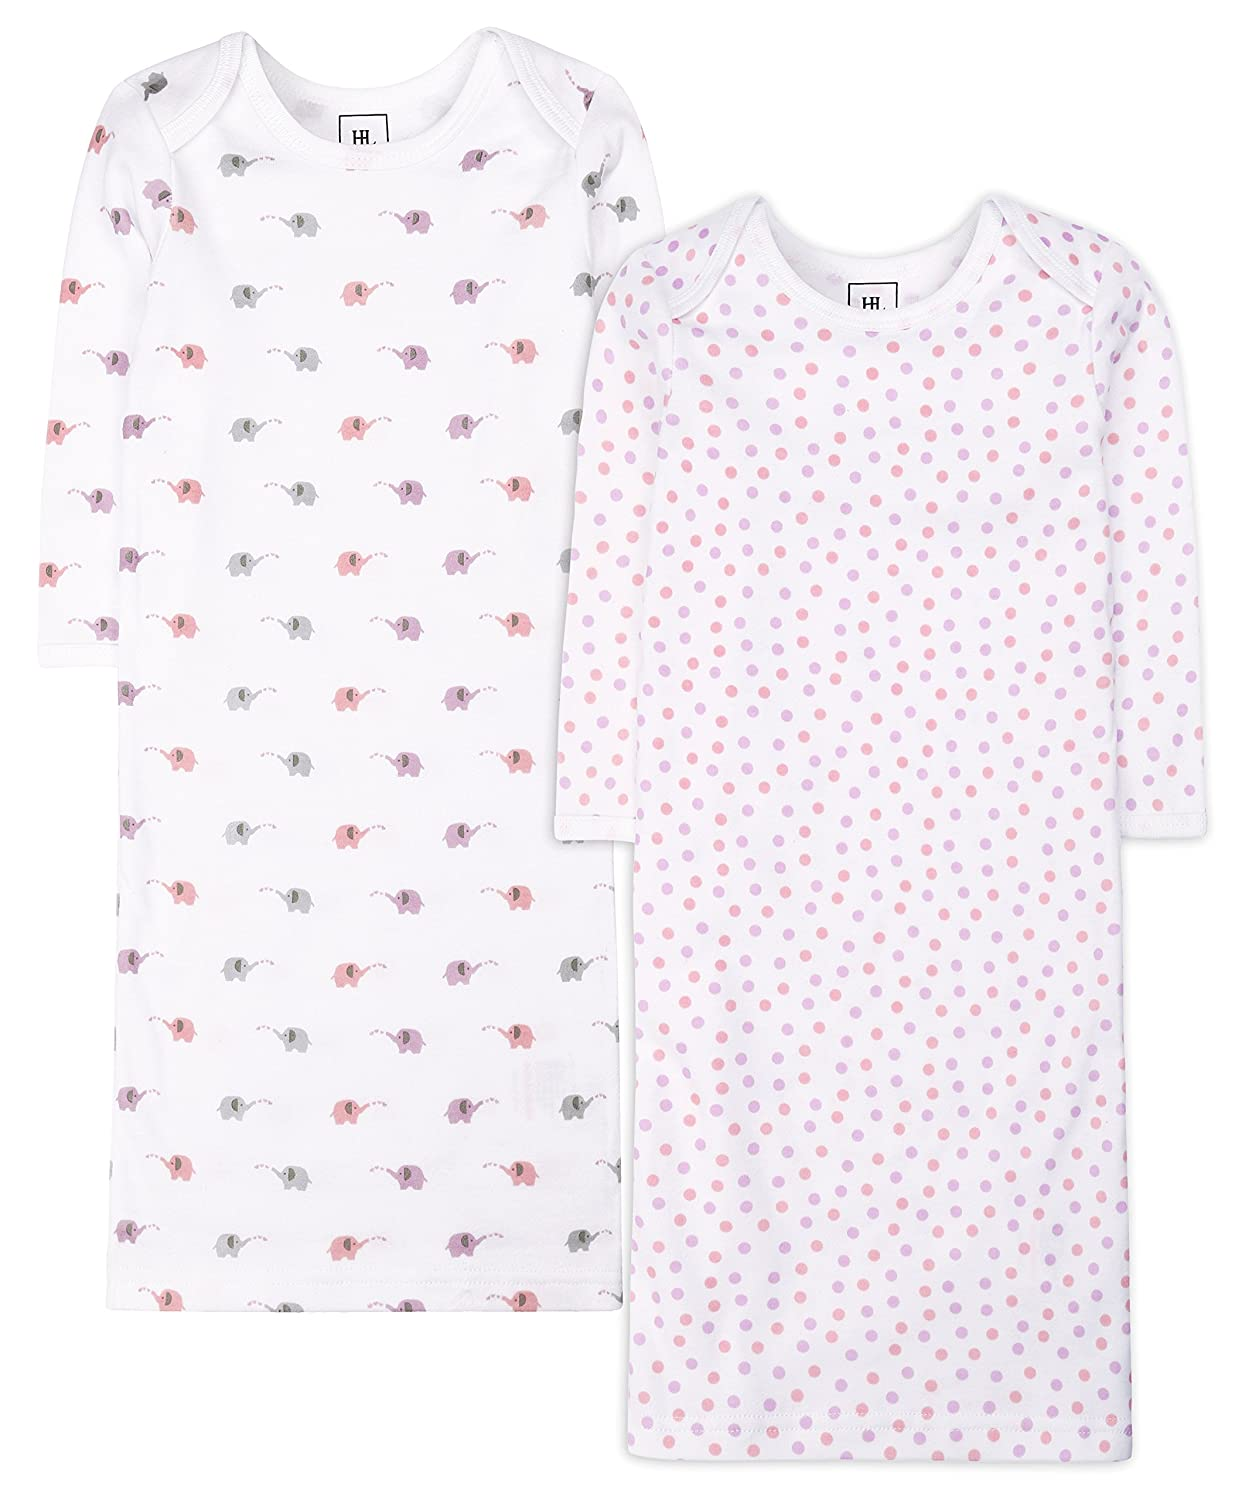 Baby boy and Girl 2 Pack Gowns Cotton Printed Sleepwear Animals Pattern Long Sleeve Clothes 3-6 Months